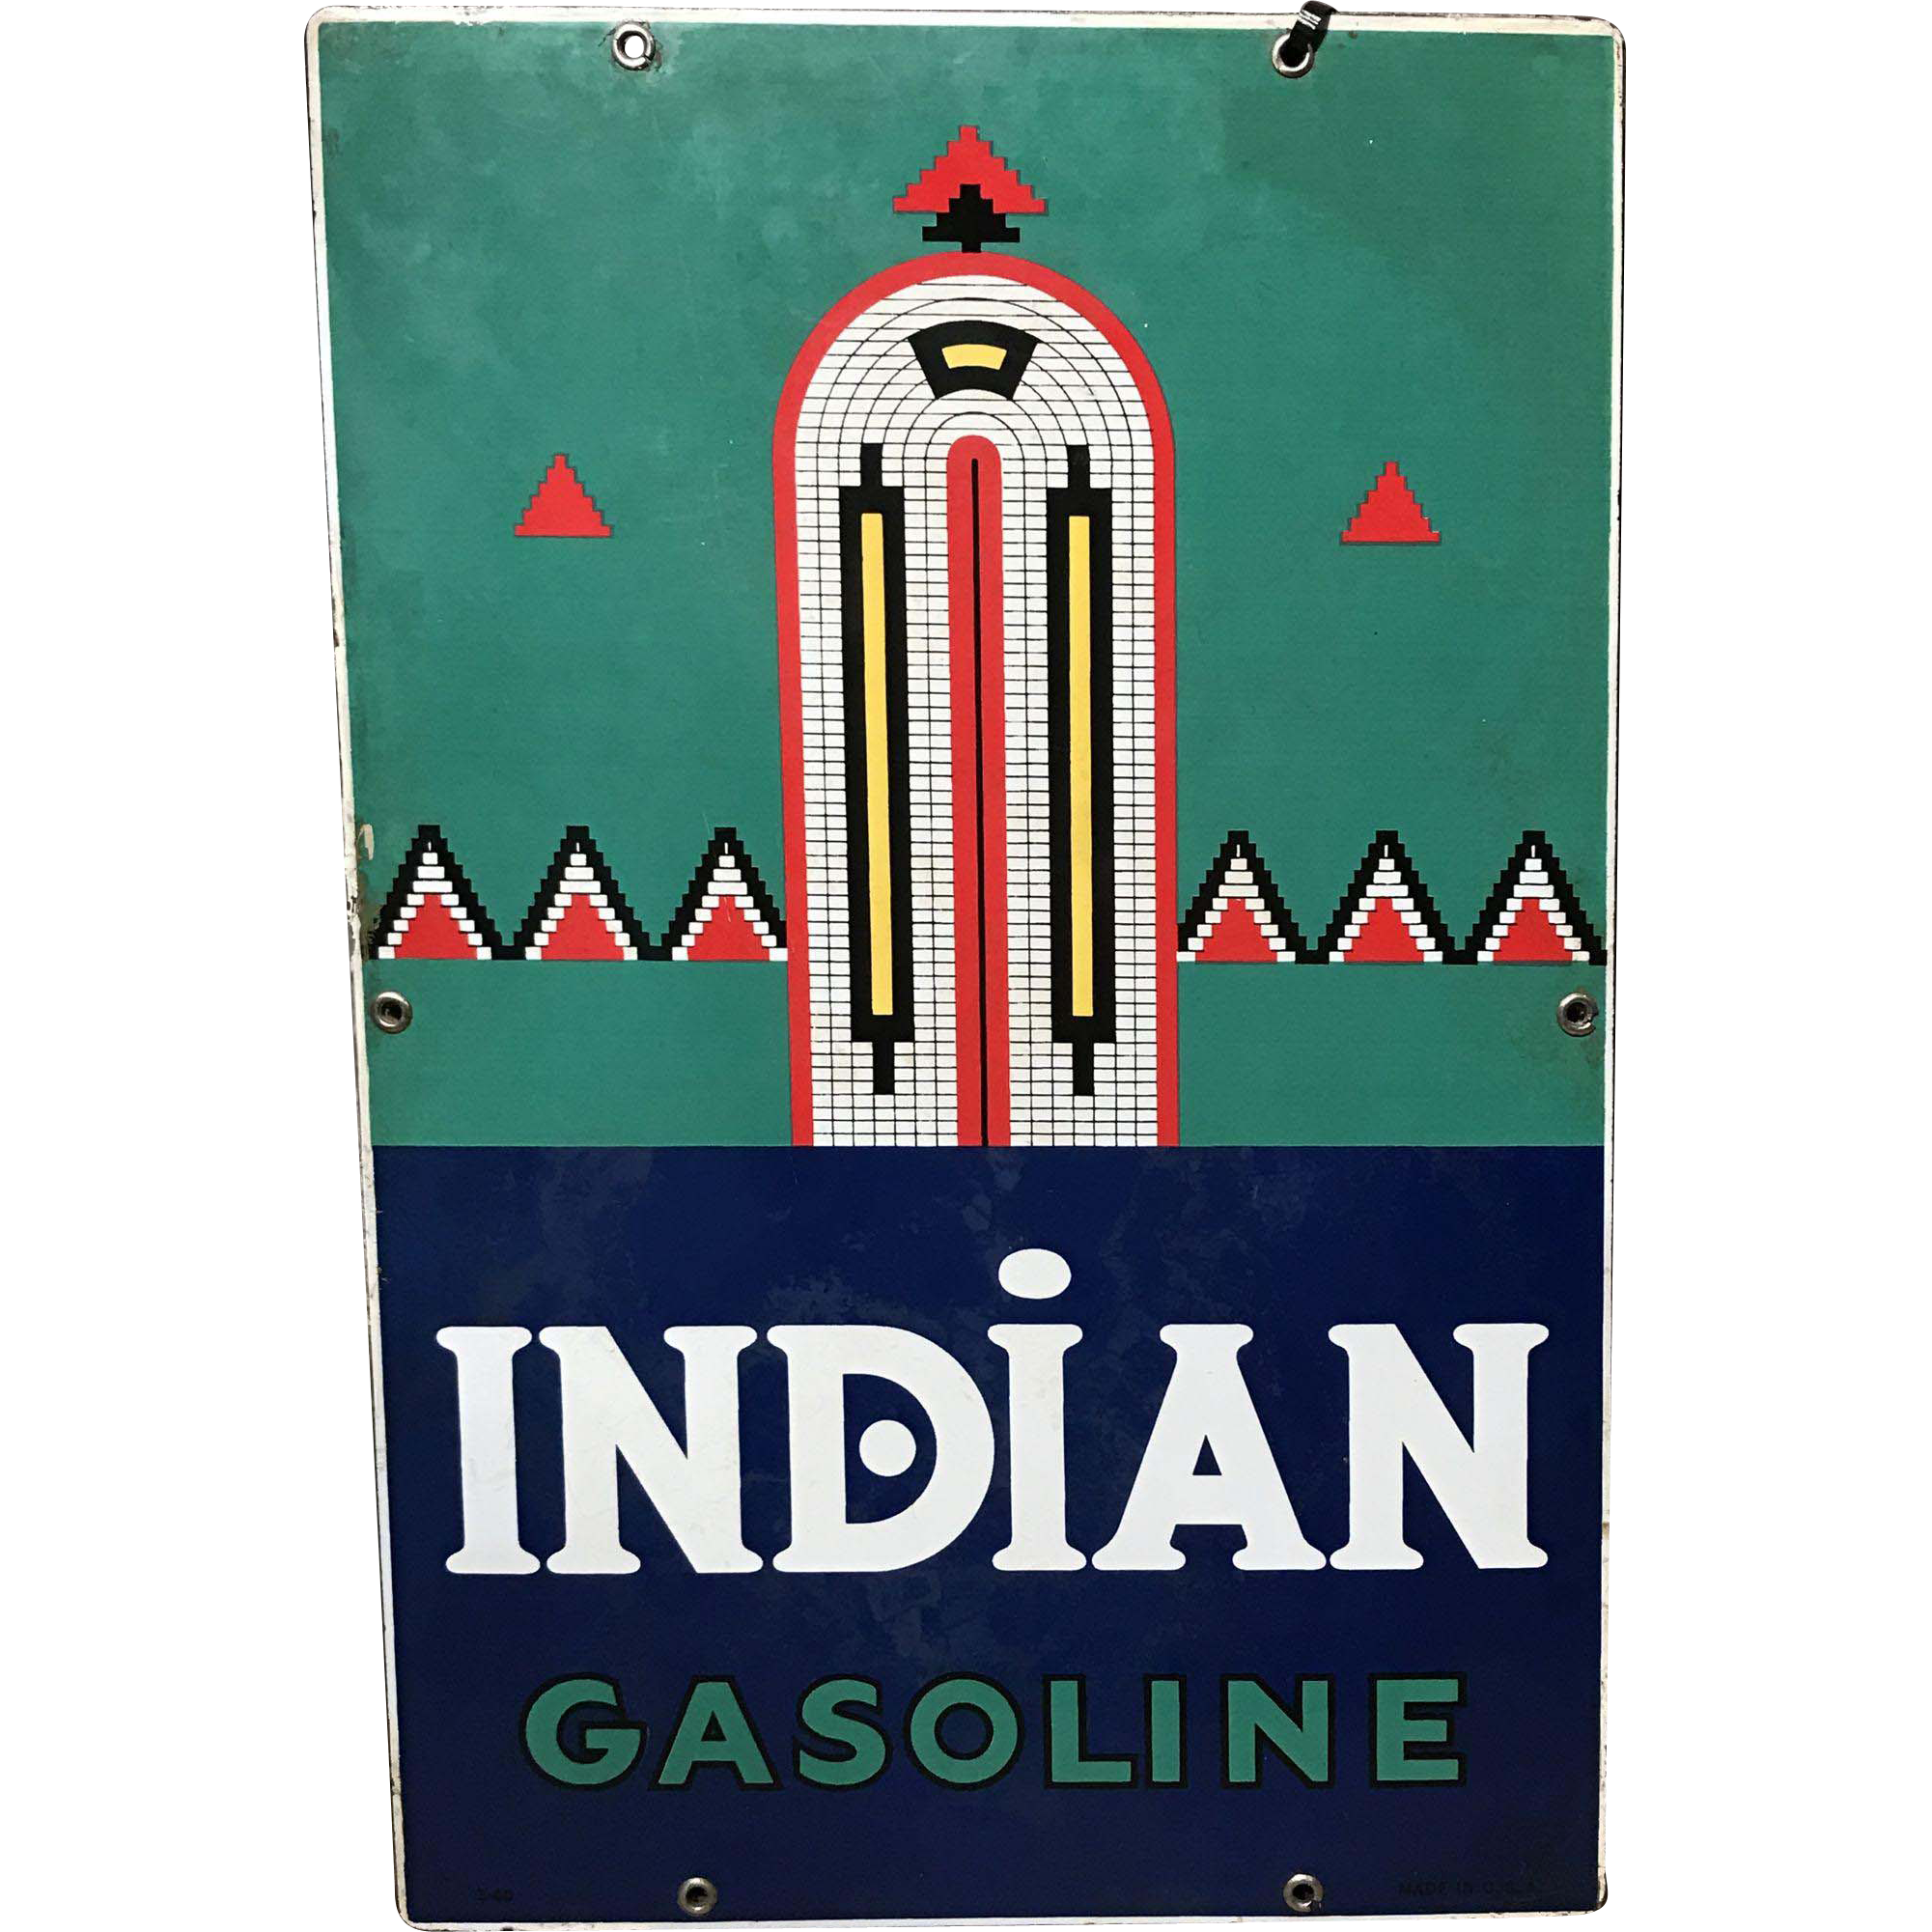 Indian Gasoline Porcelain Advertising Sign circa 1931-1943